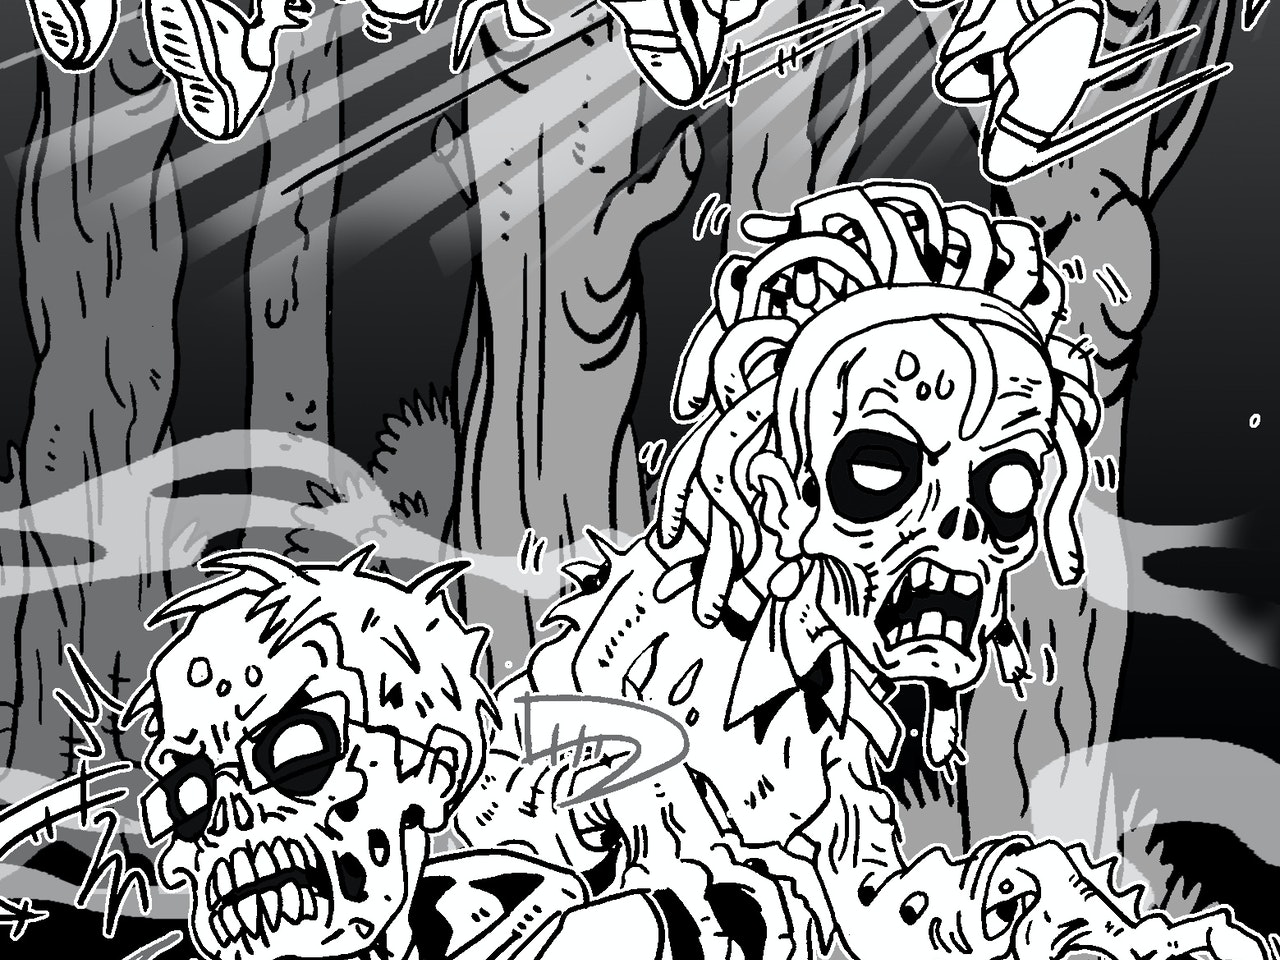 spooky horror science fiction ghoul zombies manga anime childrens cartoon comic strip Book cover illustration animation